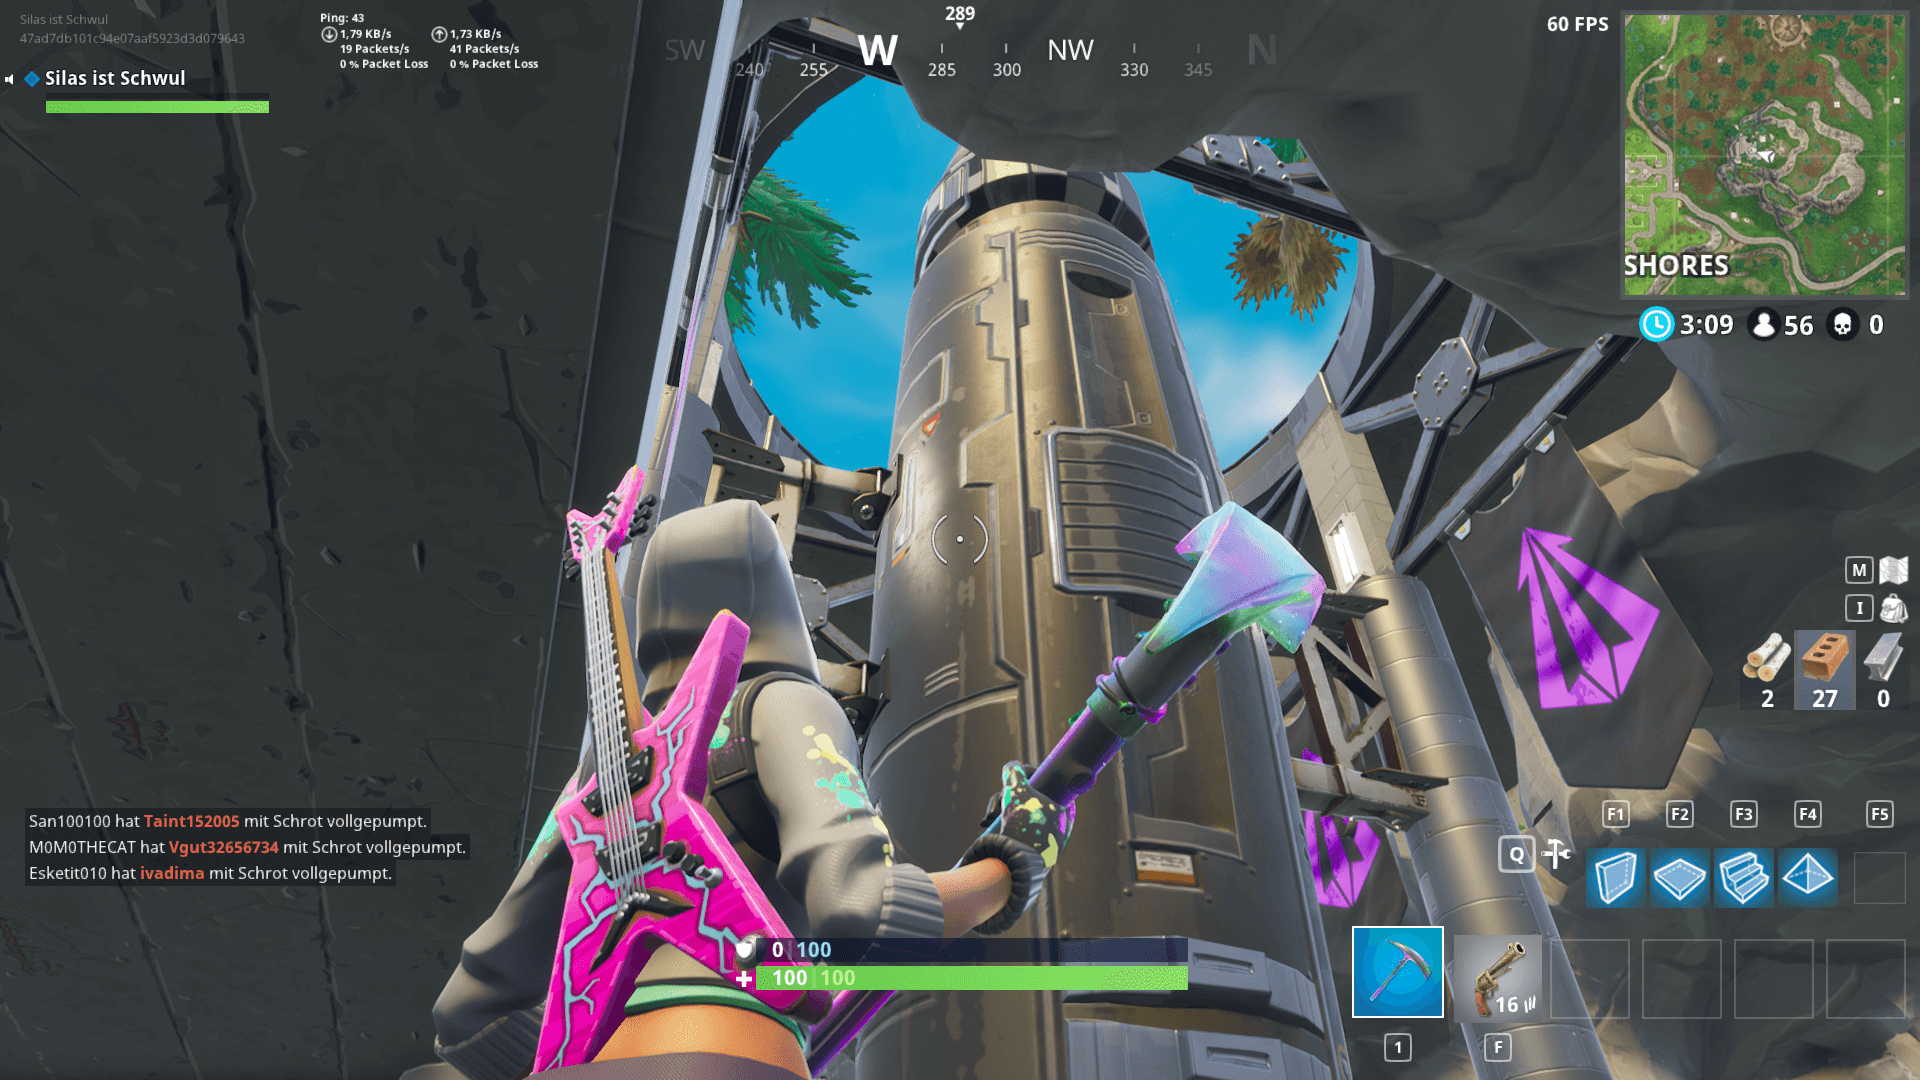 Fortnite missile silo